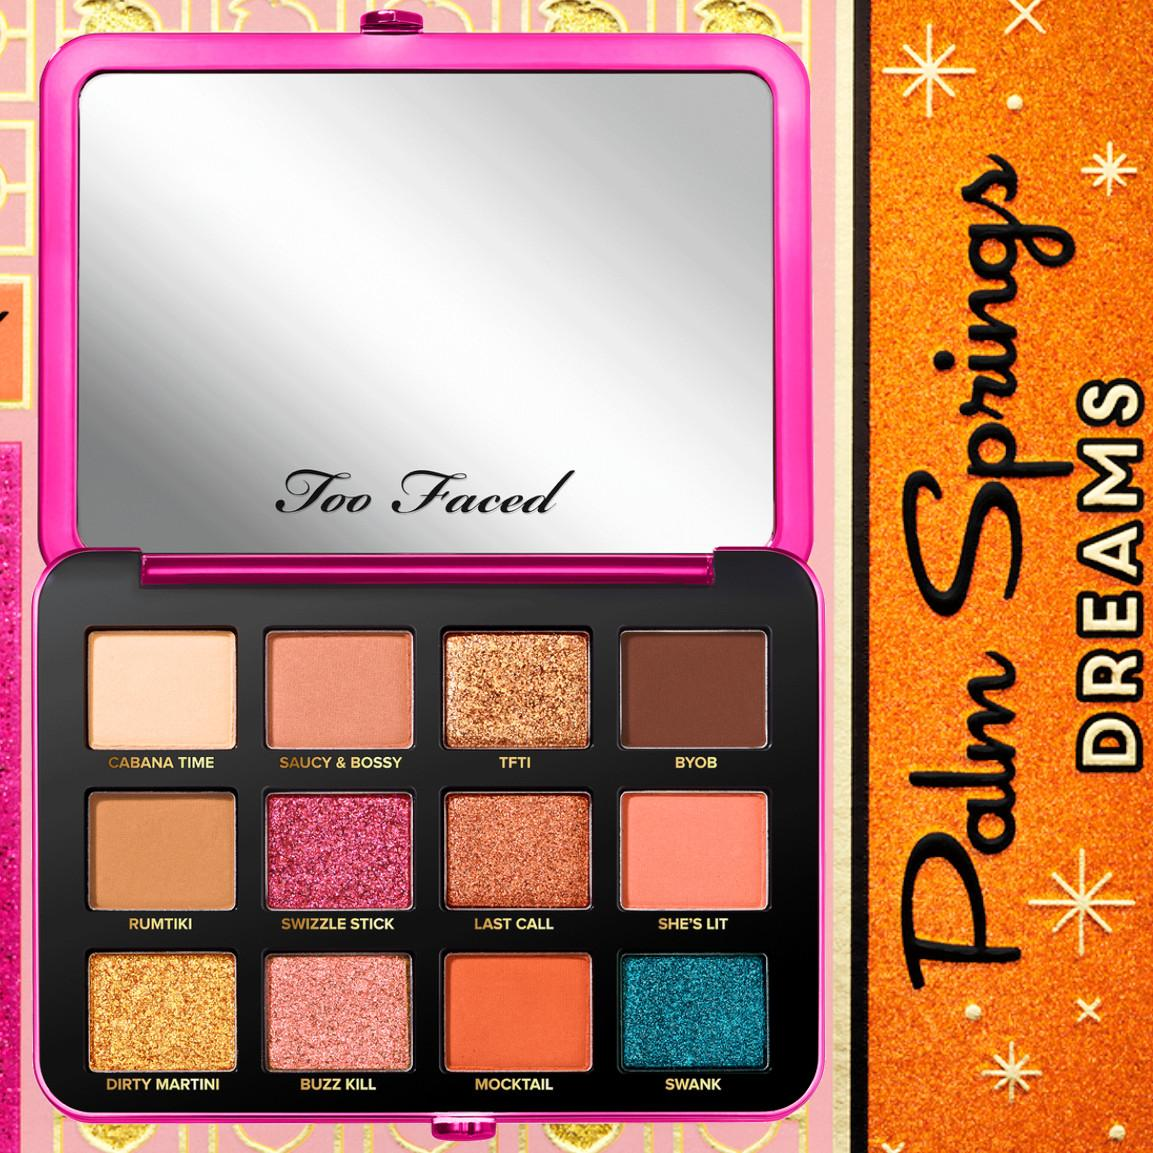 Paleta De Sombras Palm Springs Dreams Cocktail Party De Too Faced Belleza Para Todos